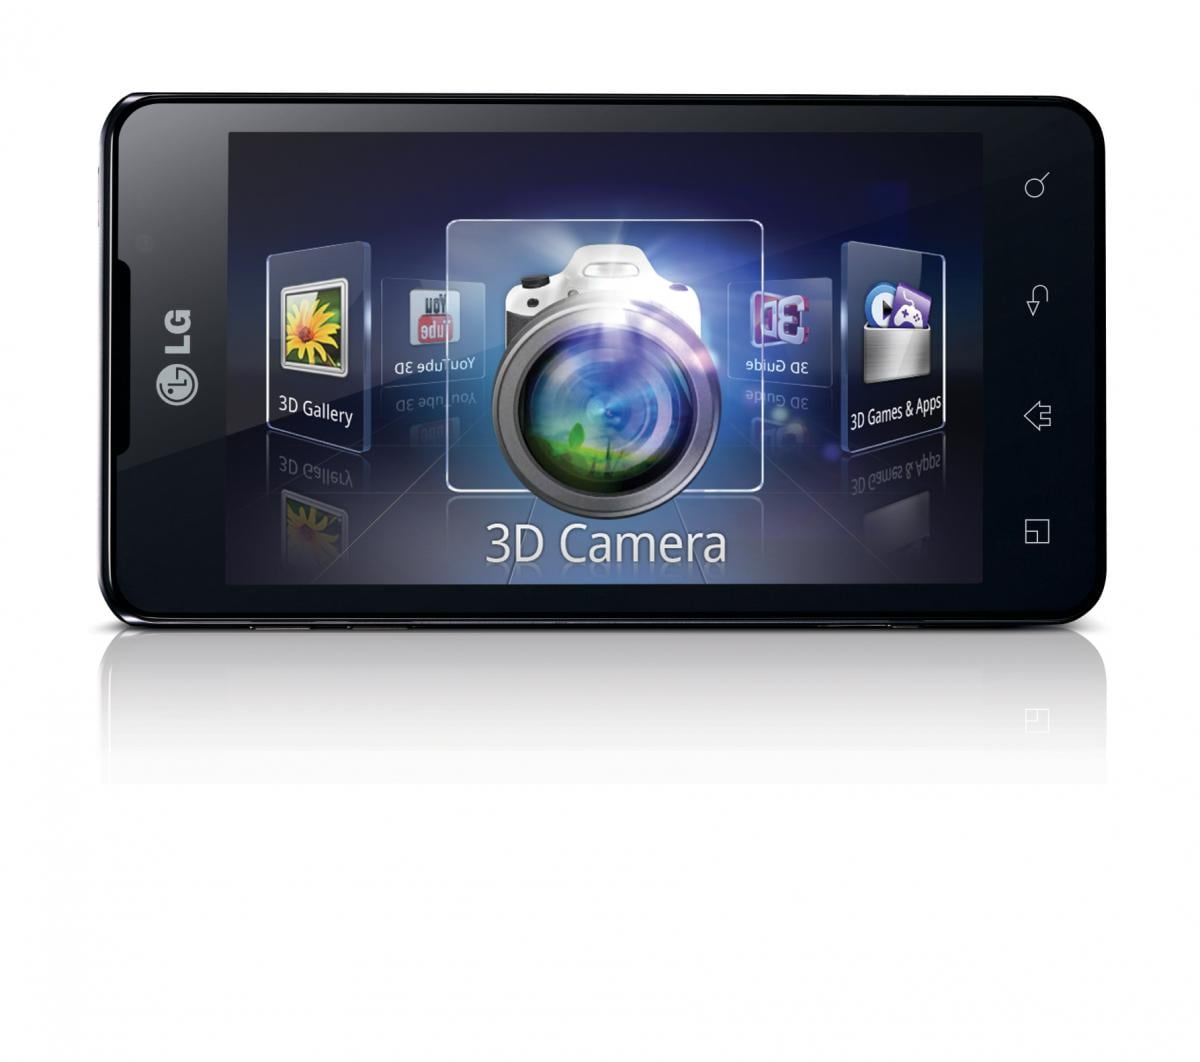 LG Optimus 3D Max: sarà questo l'Optimus 3D Cube in occidente